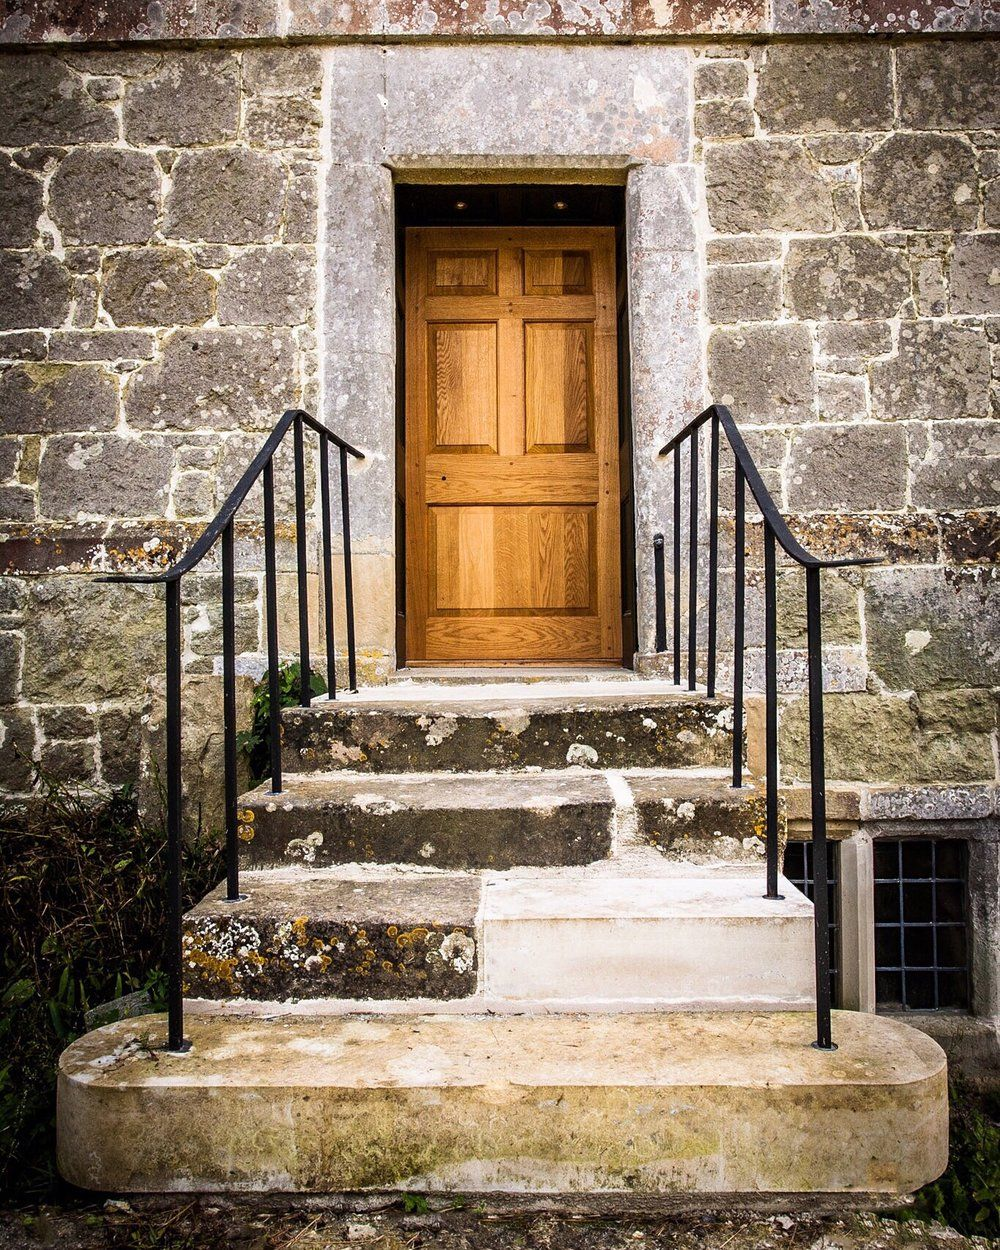 Picture of a door and steps at a Dorset Country farm - edited on my IPhone